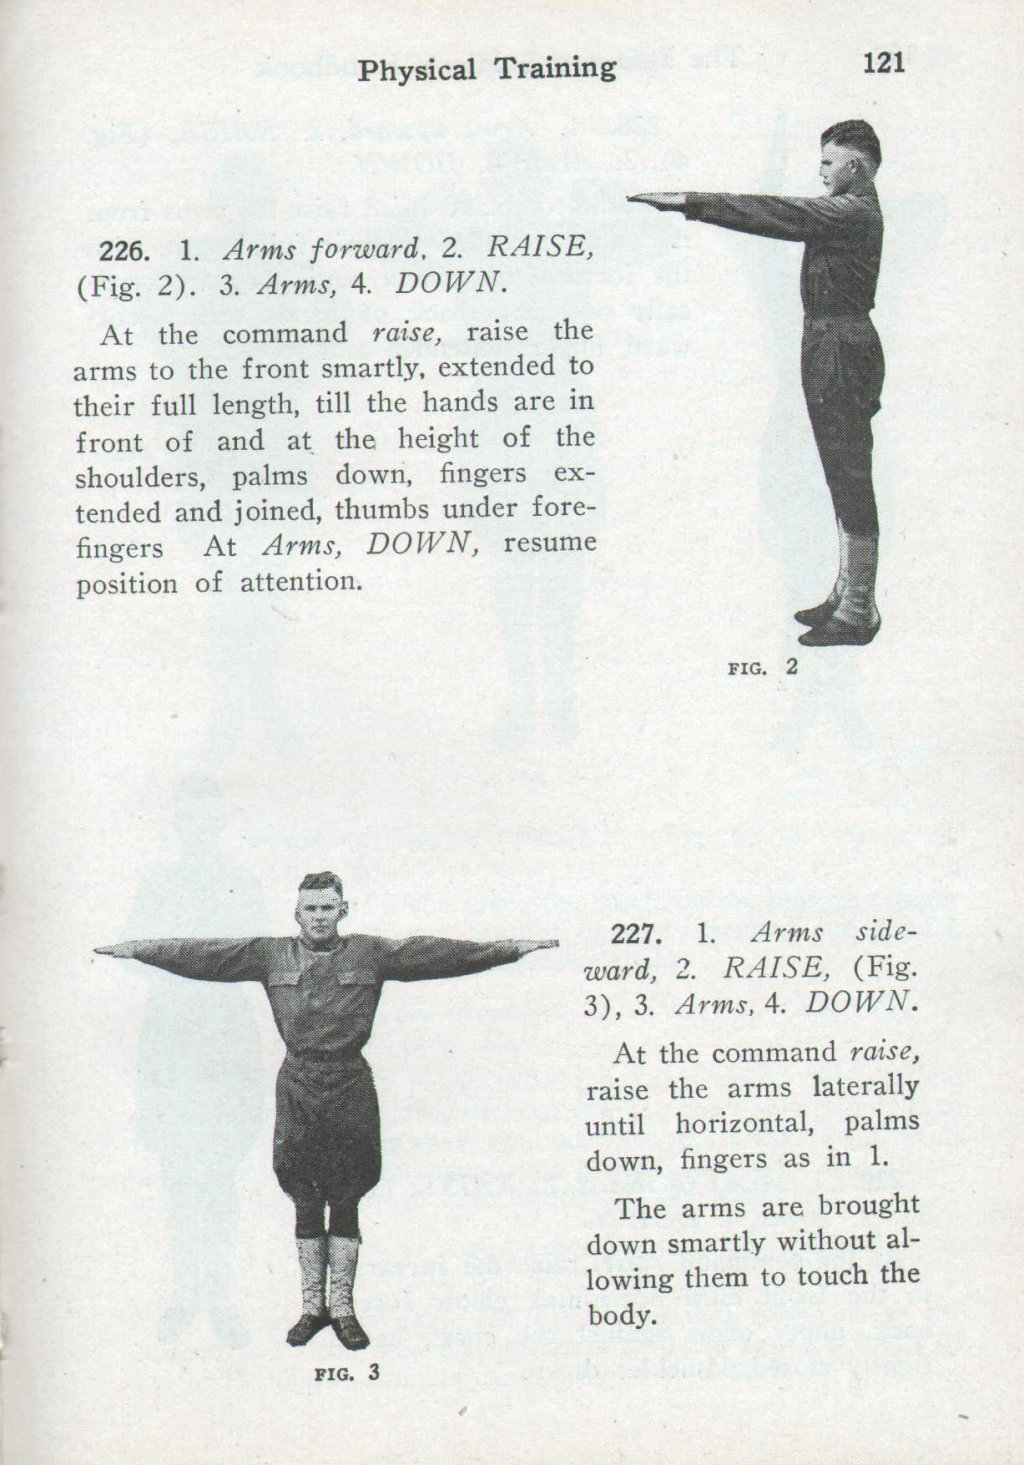 314th Infantry Regiment - Infantry Soldiers Handbook - Waldron - Page 121